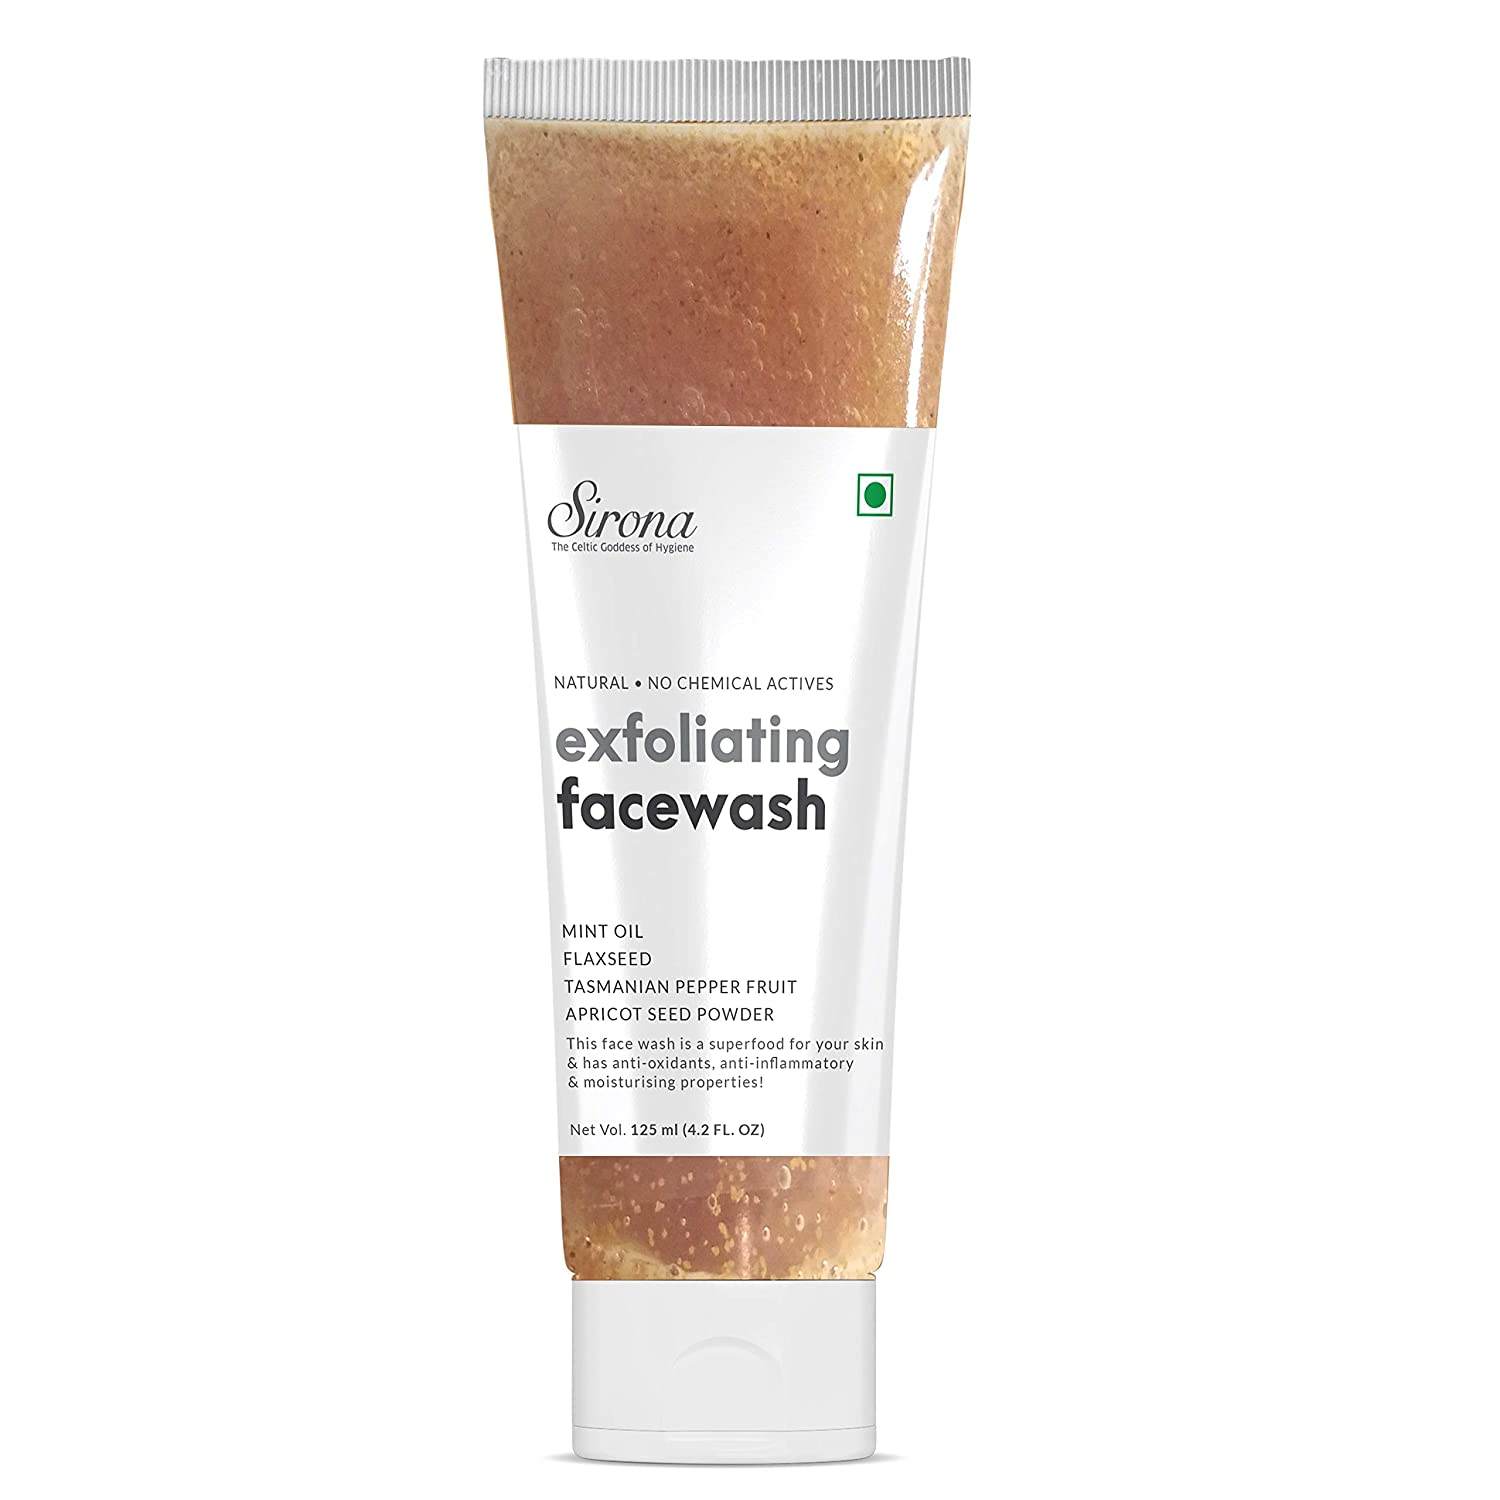 Sirona Natural Exfoliating Face Wash Facial Cleaner With